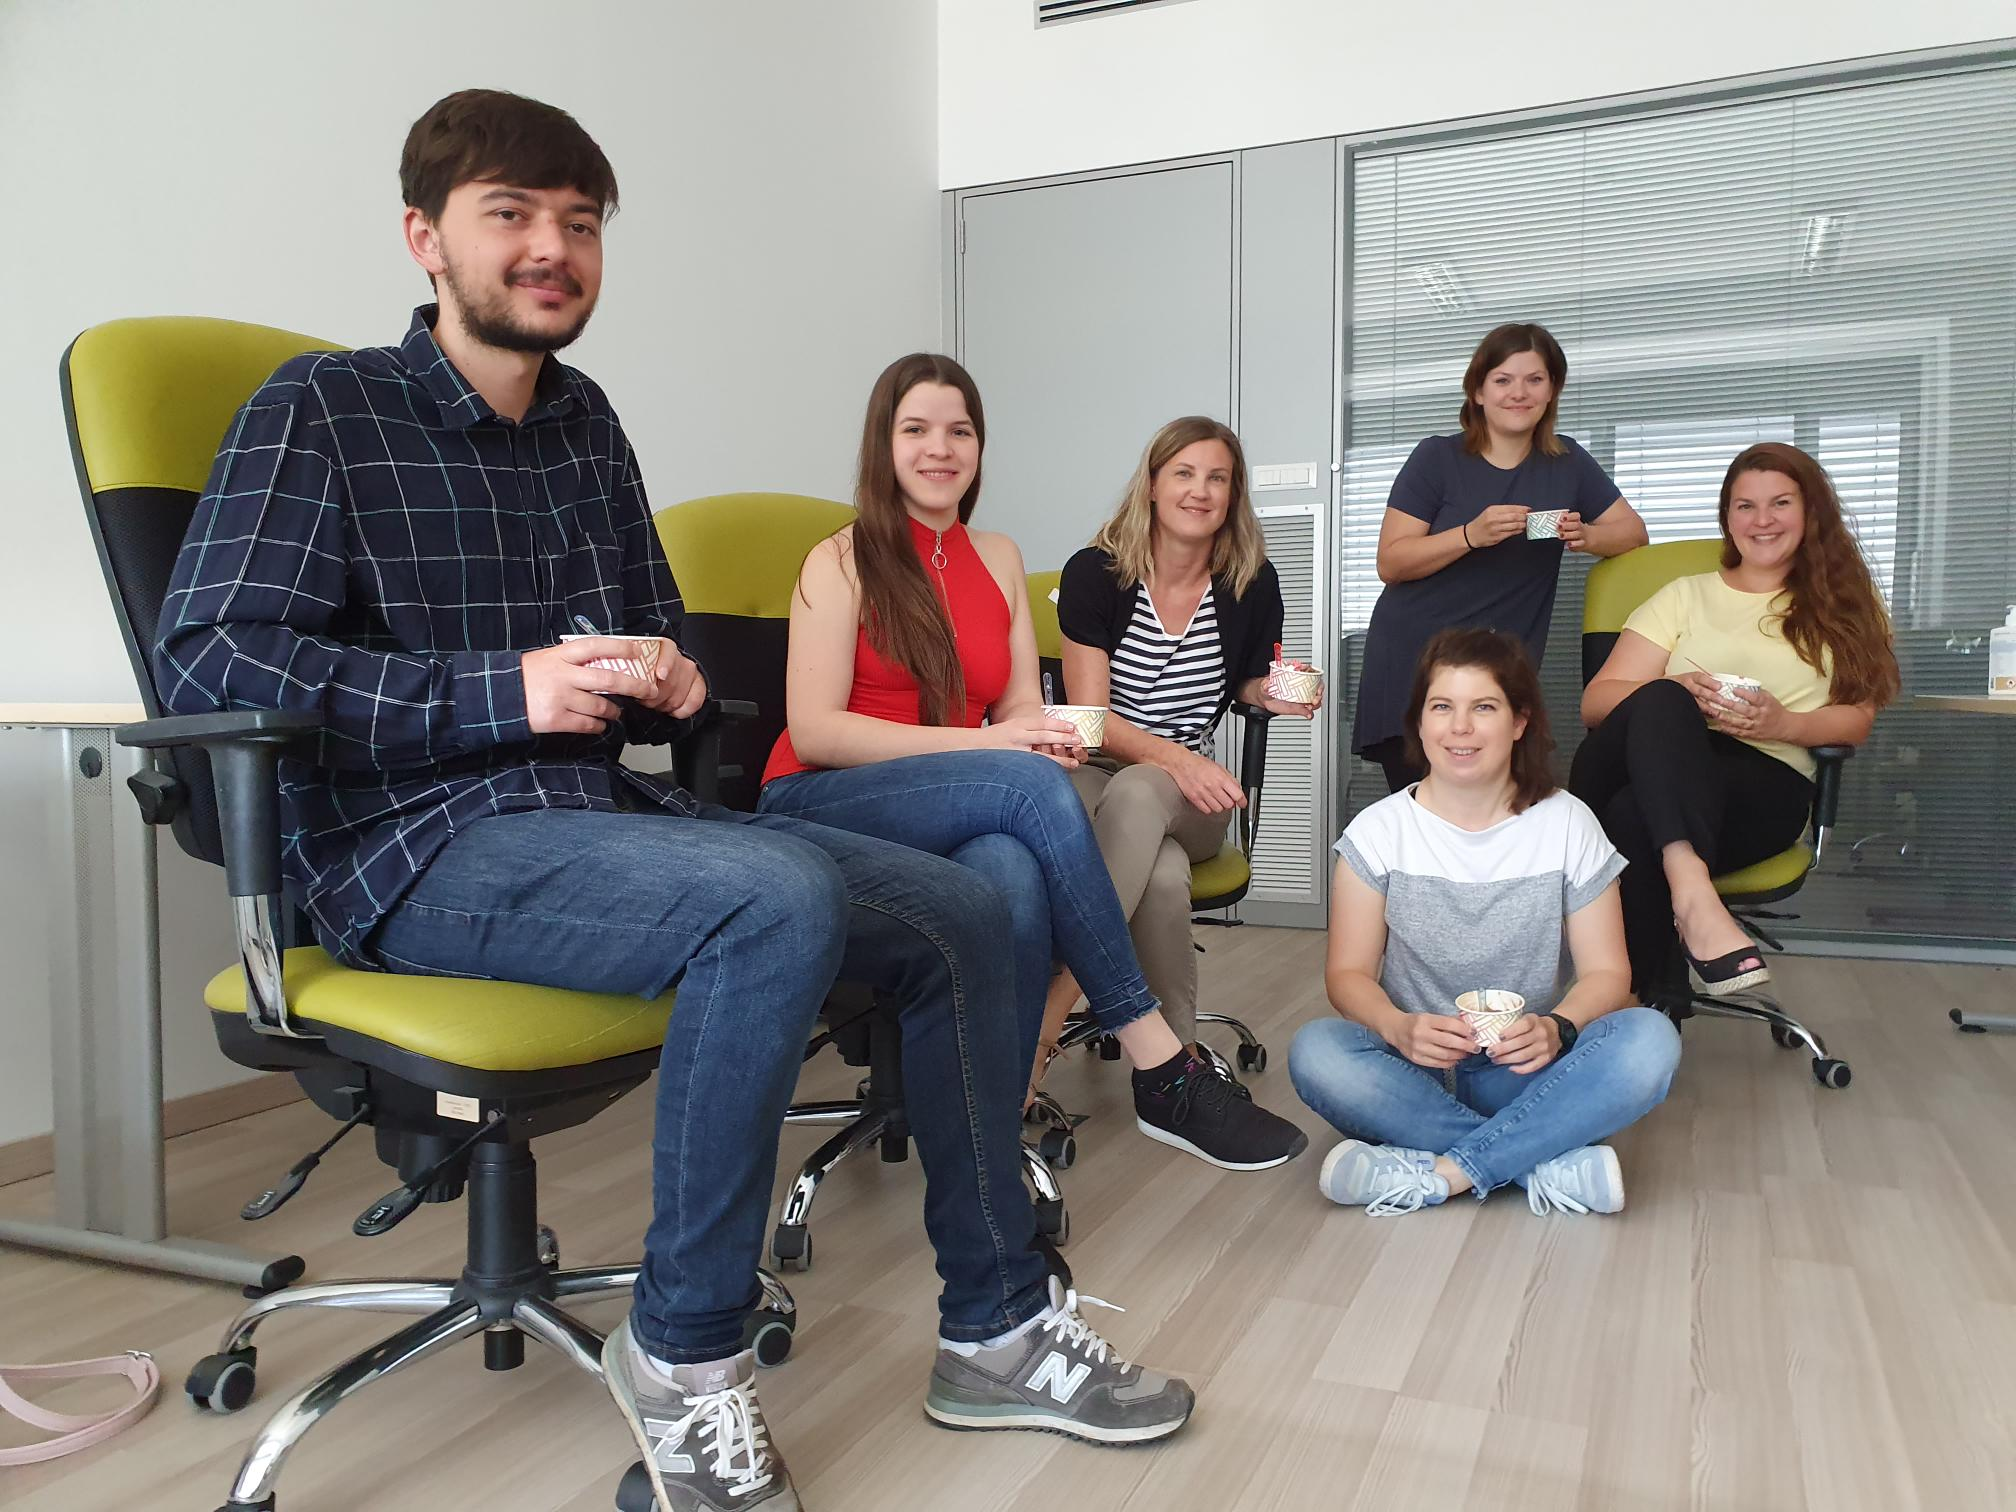 Meet the XLAB marketing team: Ferdi, Špela, Katja, Jasna, Diana and Anja.